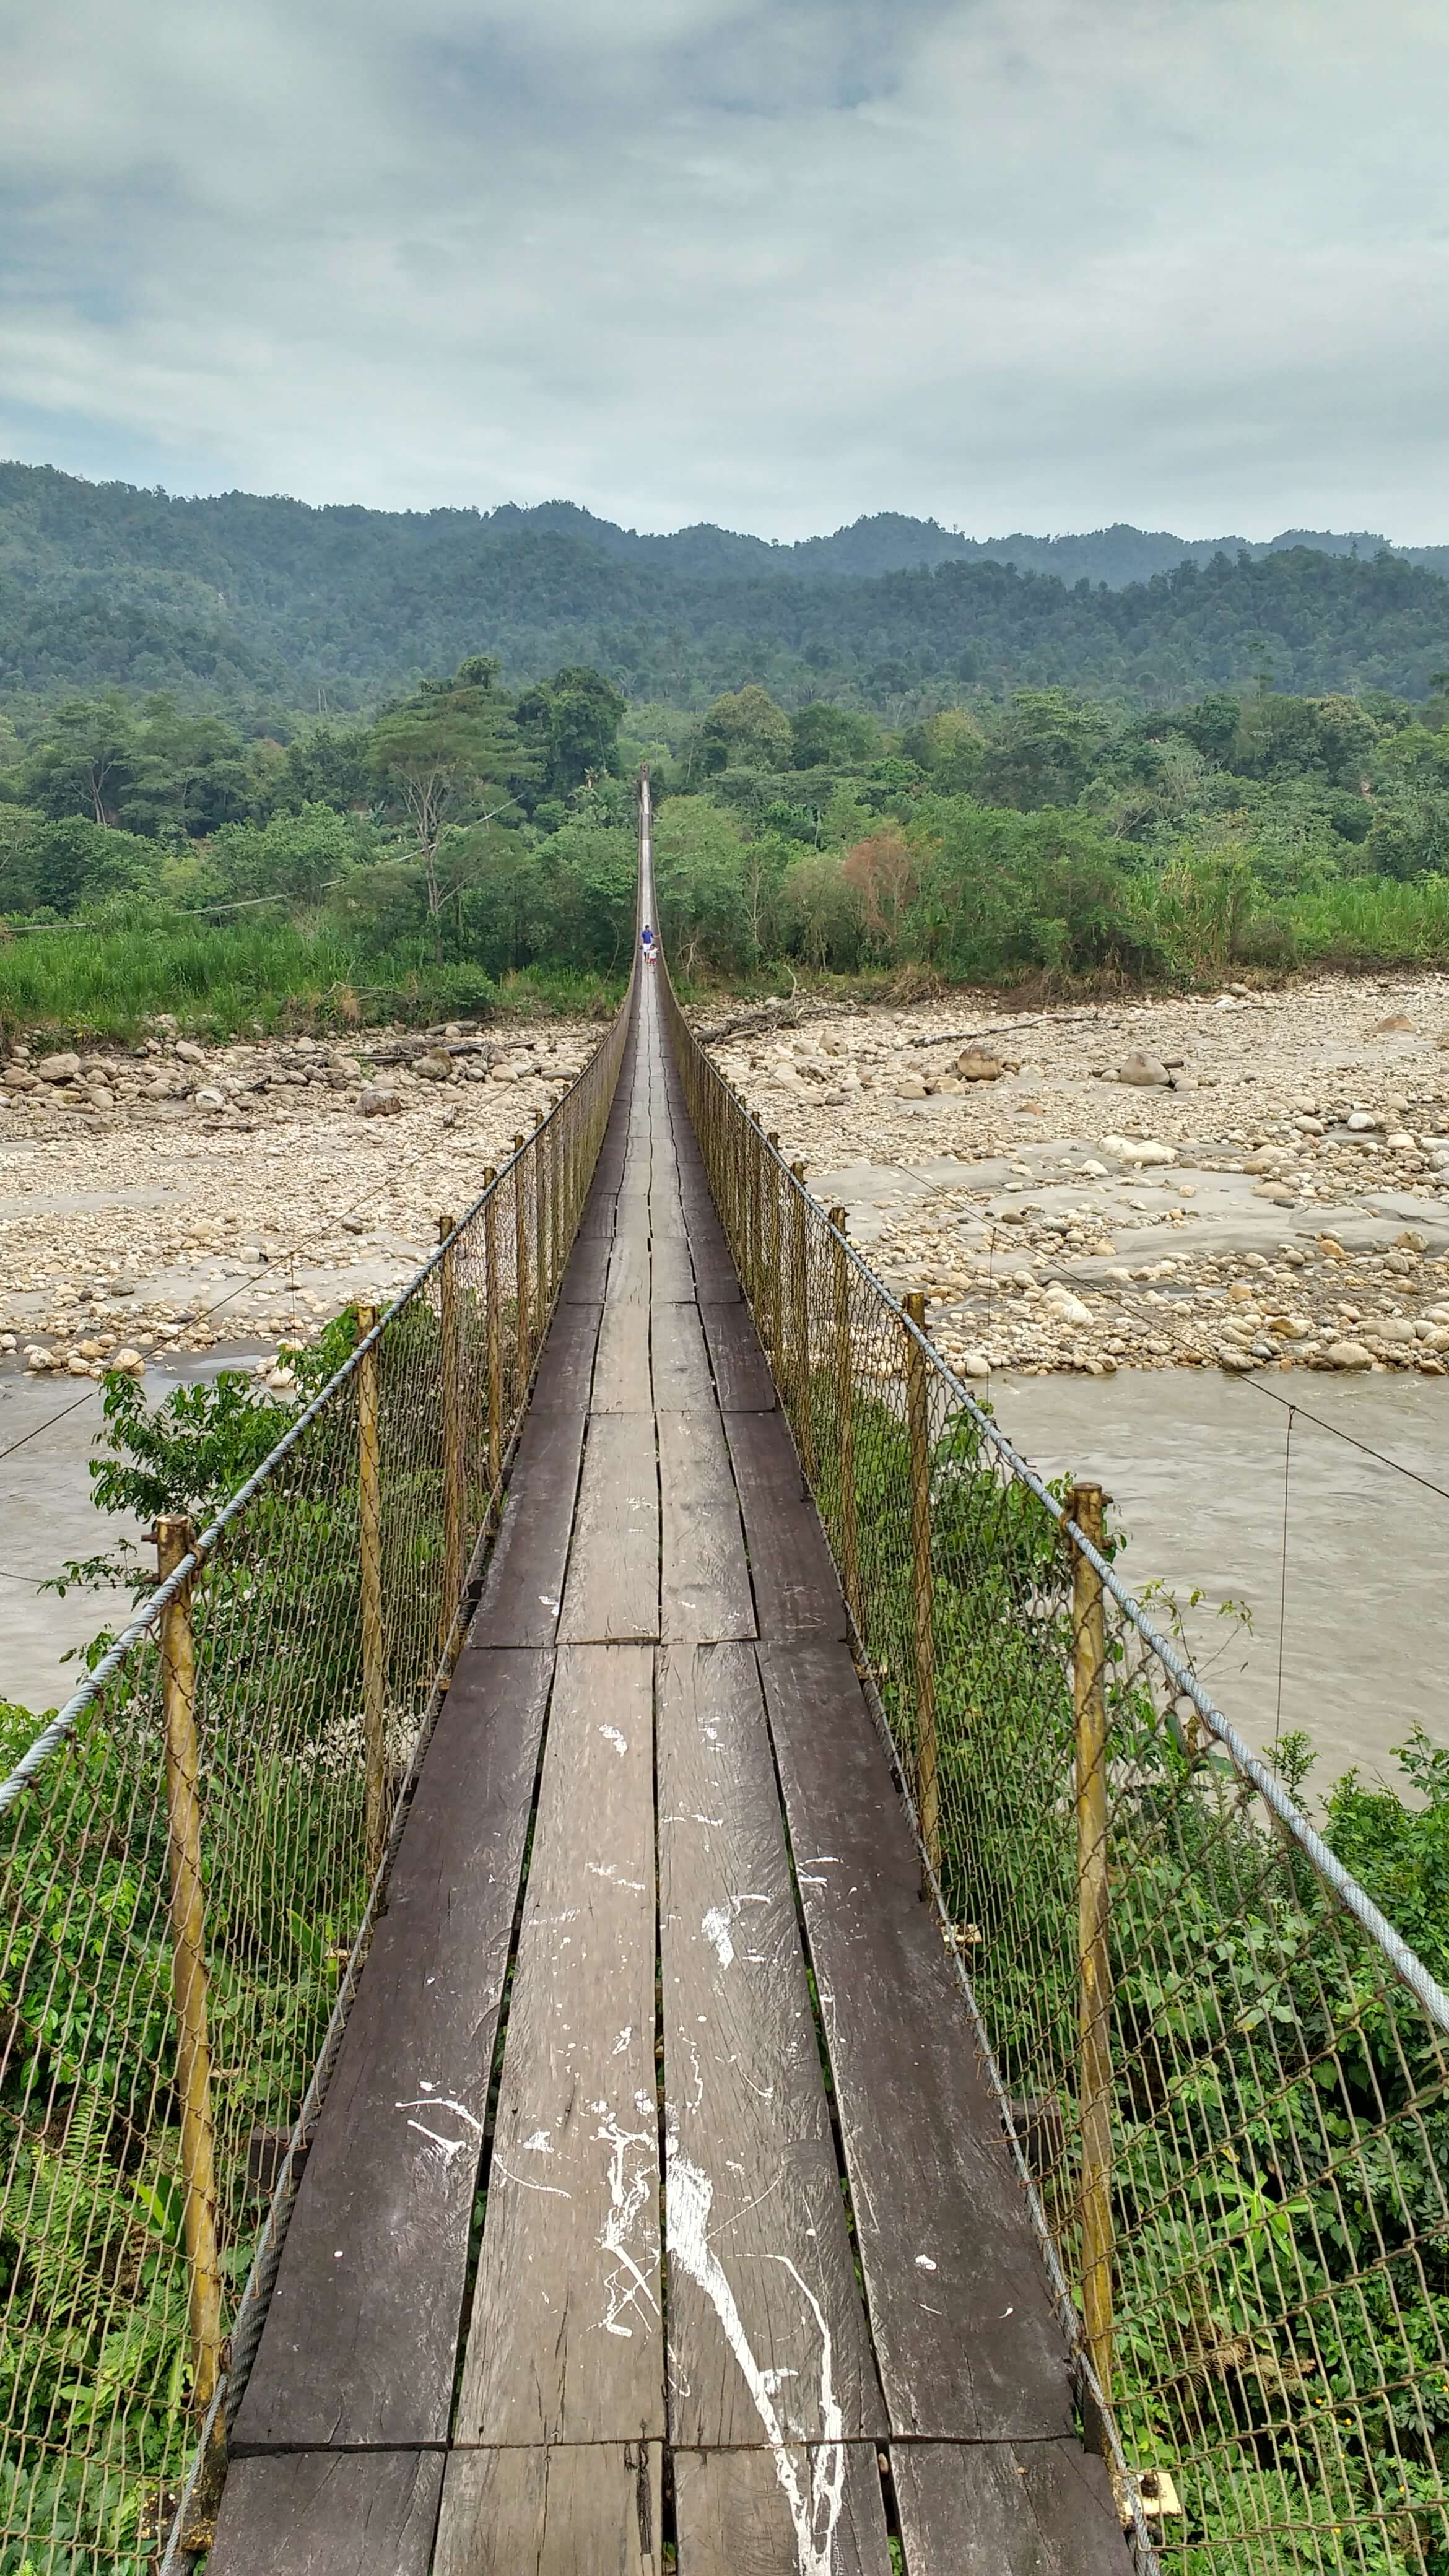 The 450 meter bridge that crosses the Cobaria River is what separates Berito's house on the eastern border of the resguardo and the Catholic mission that once held him against his will. Photo: Jake Ling